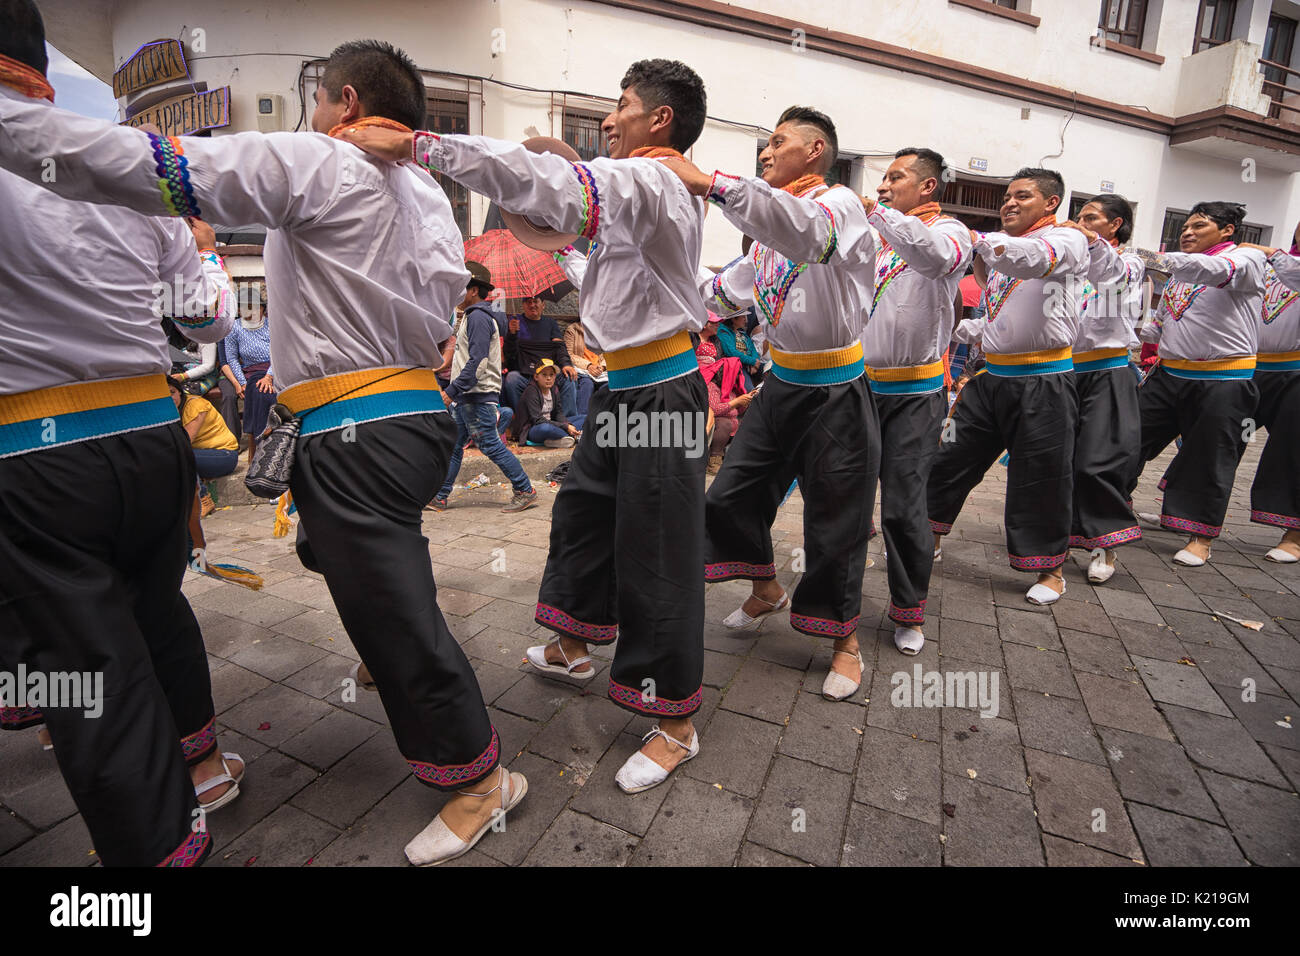 June 17, 2017 Pujili, Ecuador: male dancers in traditional clothing performing on the street during Corpus Christi Stock Photo